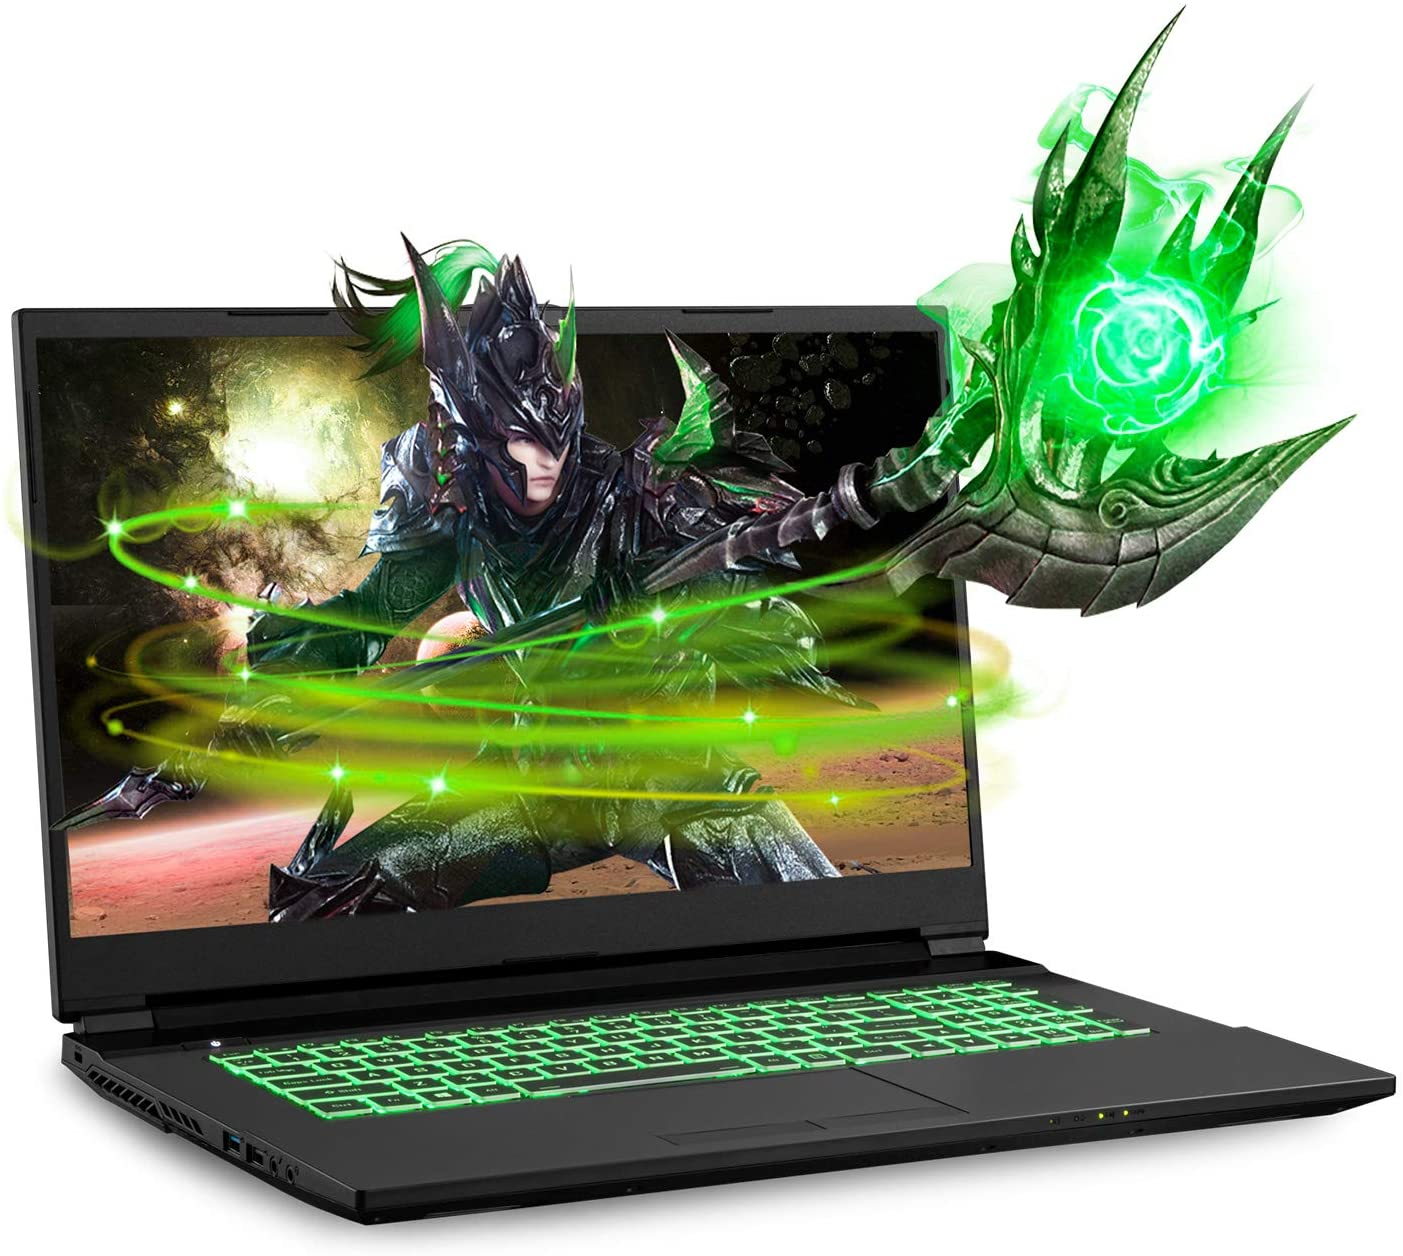 The Big Screen Budget Gaming Laptop